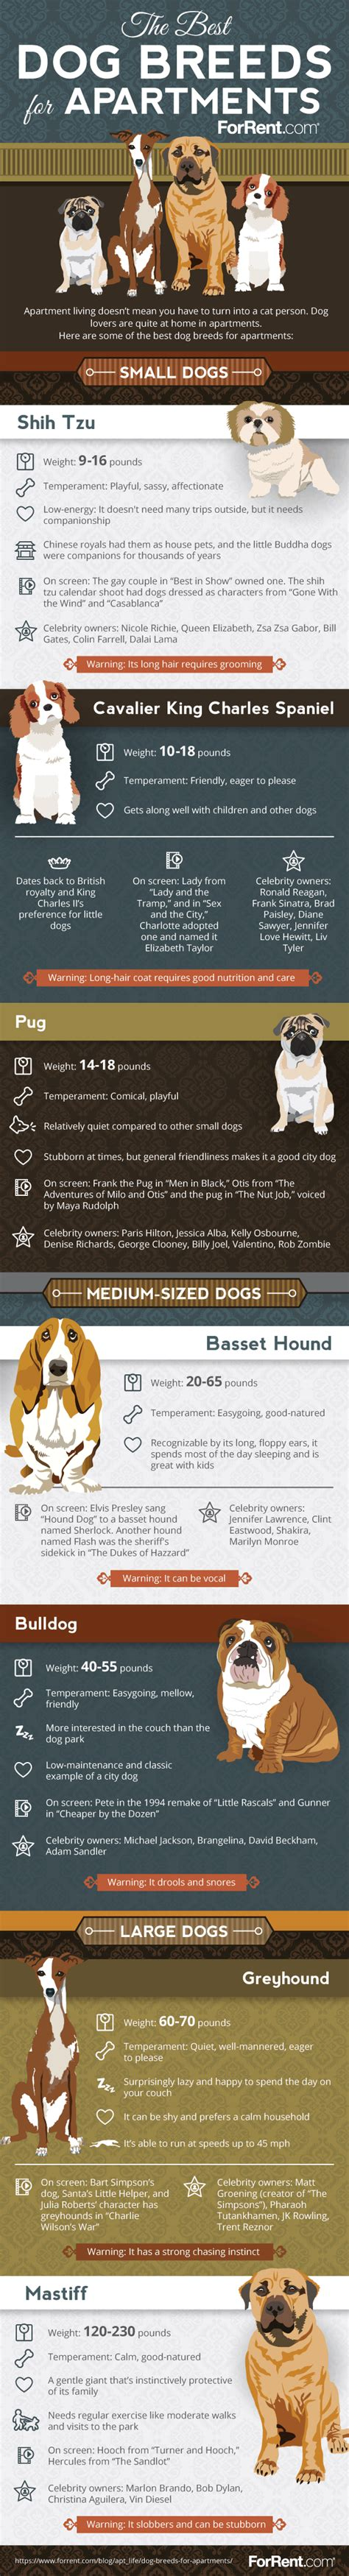 large breeds for apartments infographic the best breeds for apartment living the dogington post